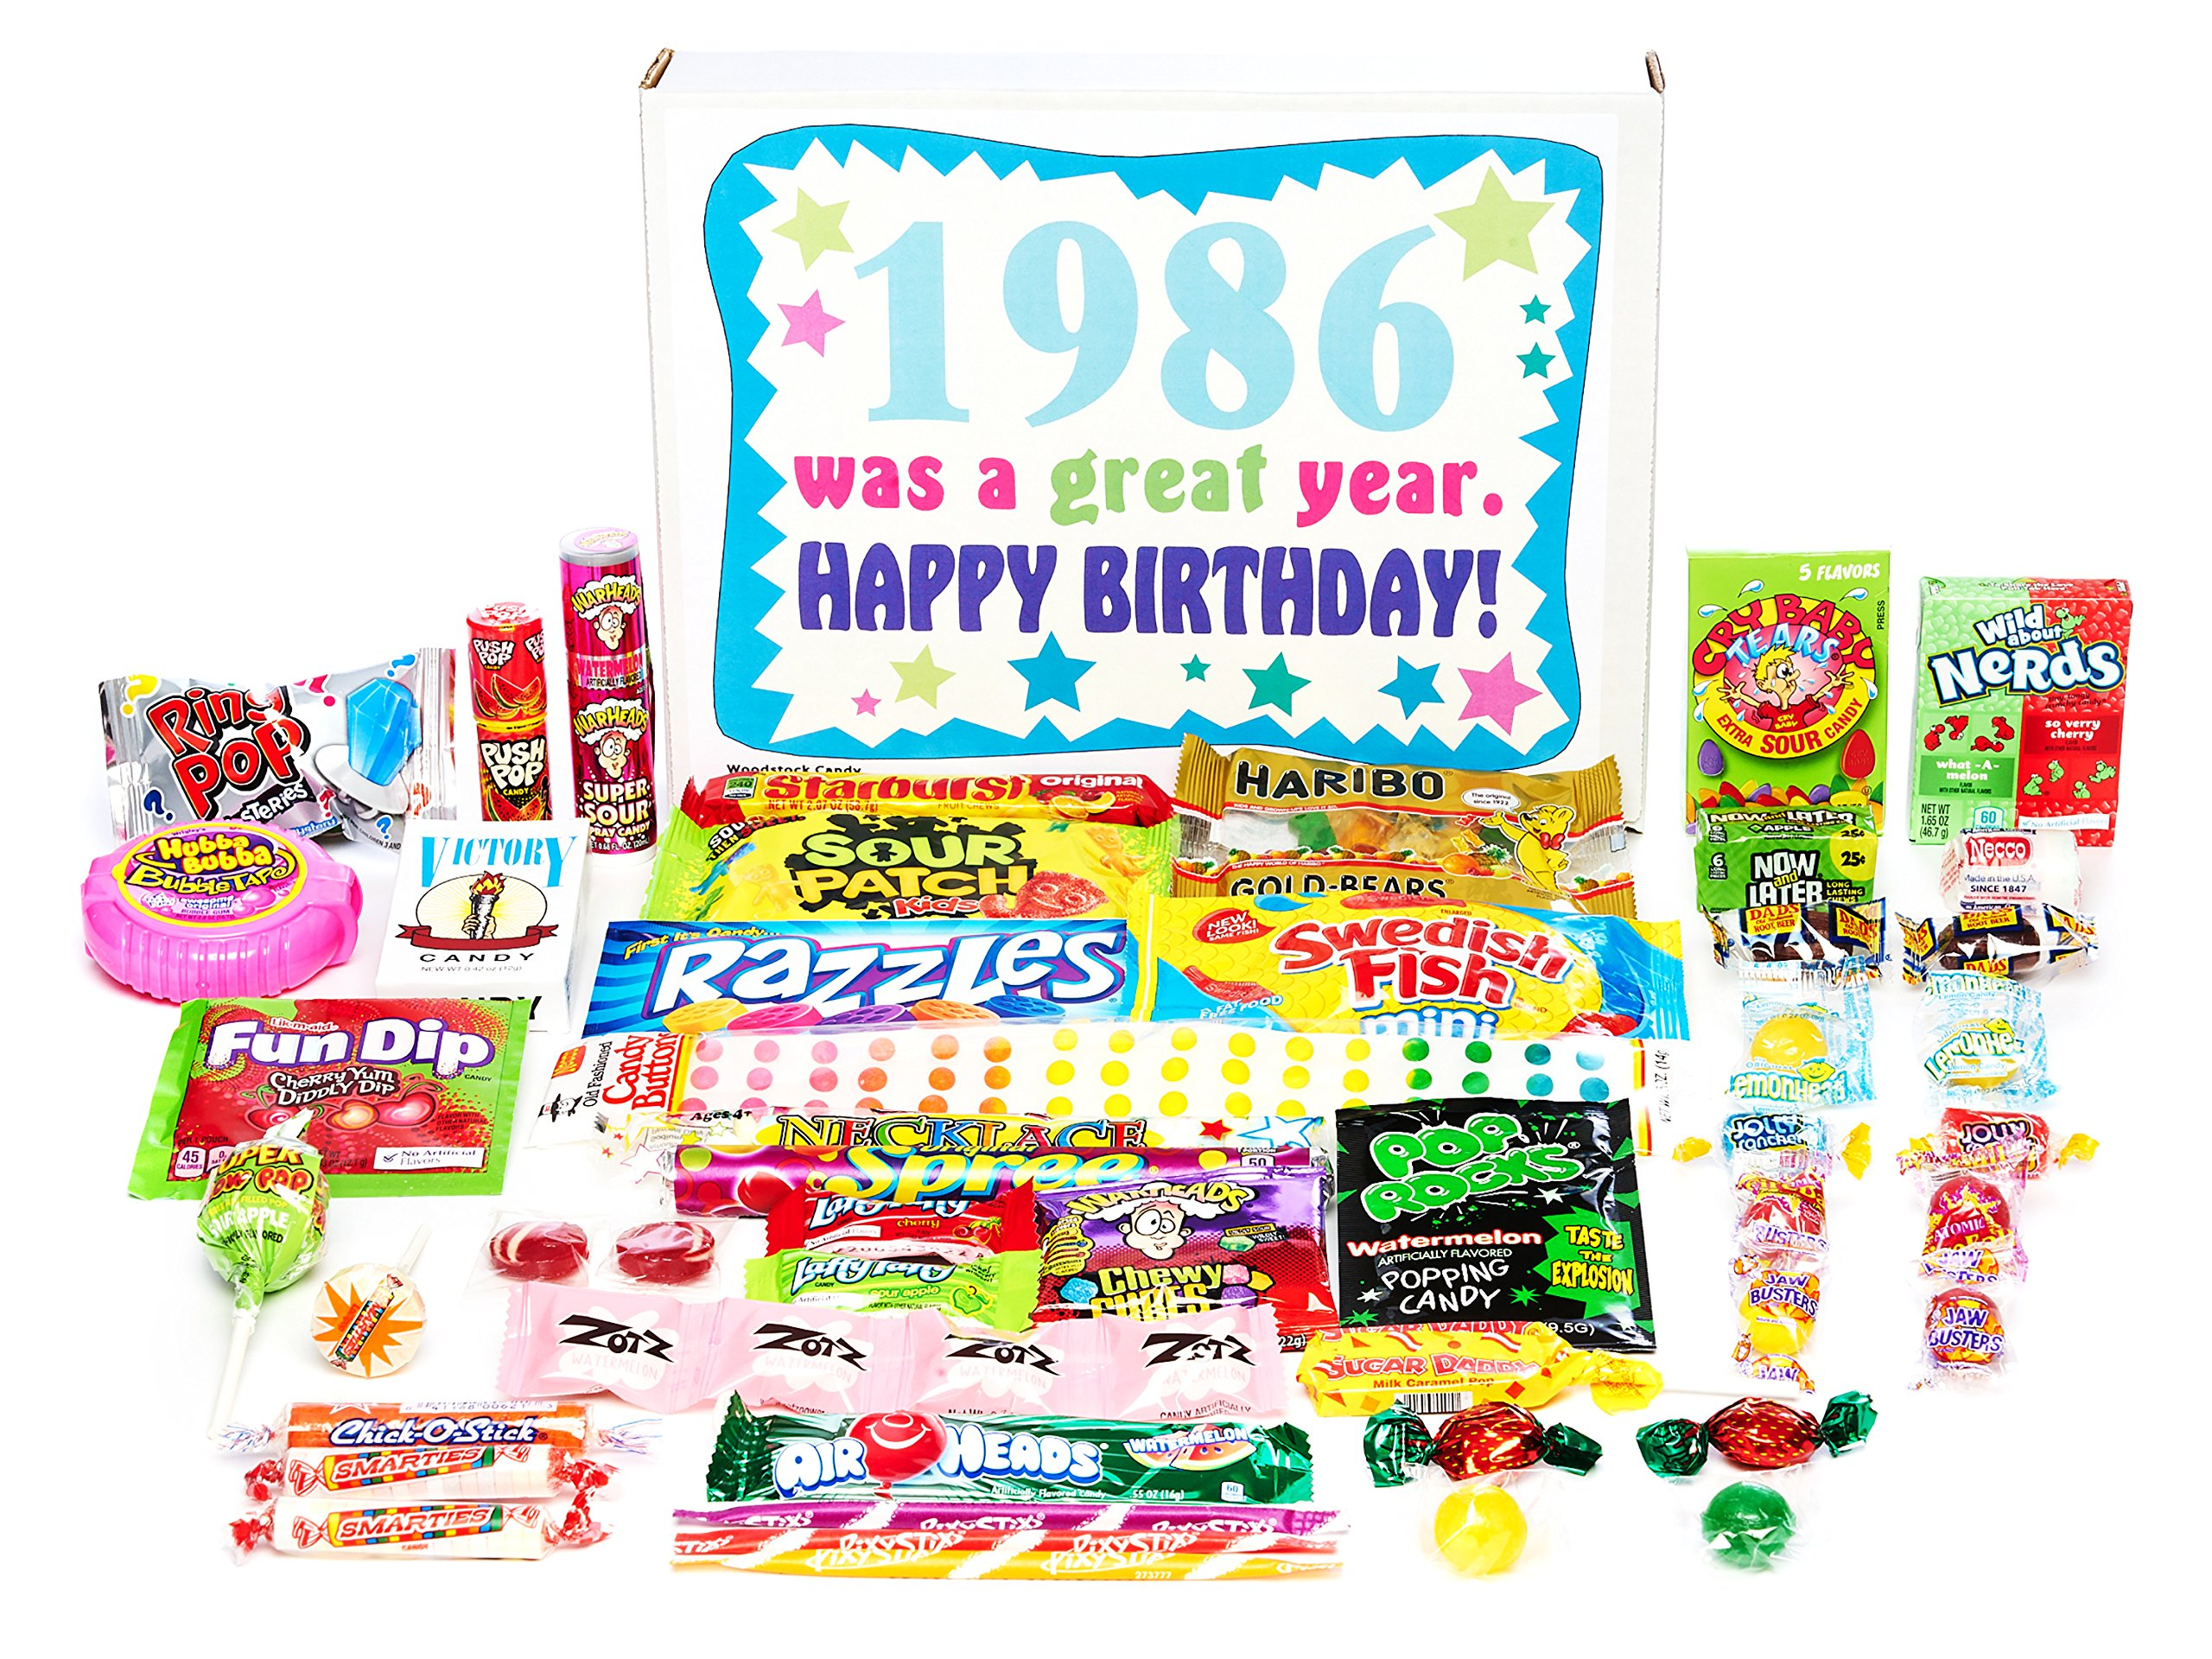 Woodstock Candy ~ 33rd Birthday Gift Box of Nostalgic Retro Candy Assortment from Childhood for 33 Year Old Man or Woman Born 1986